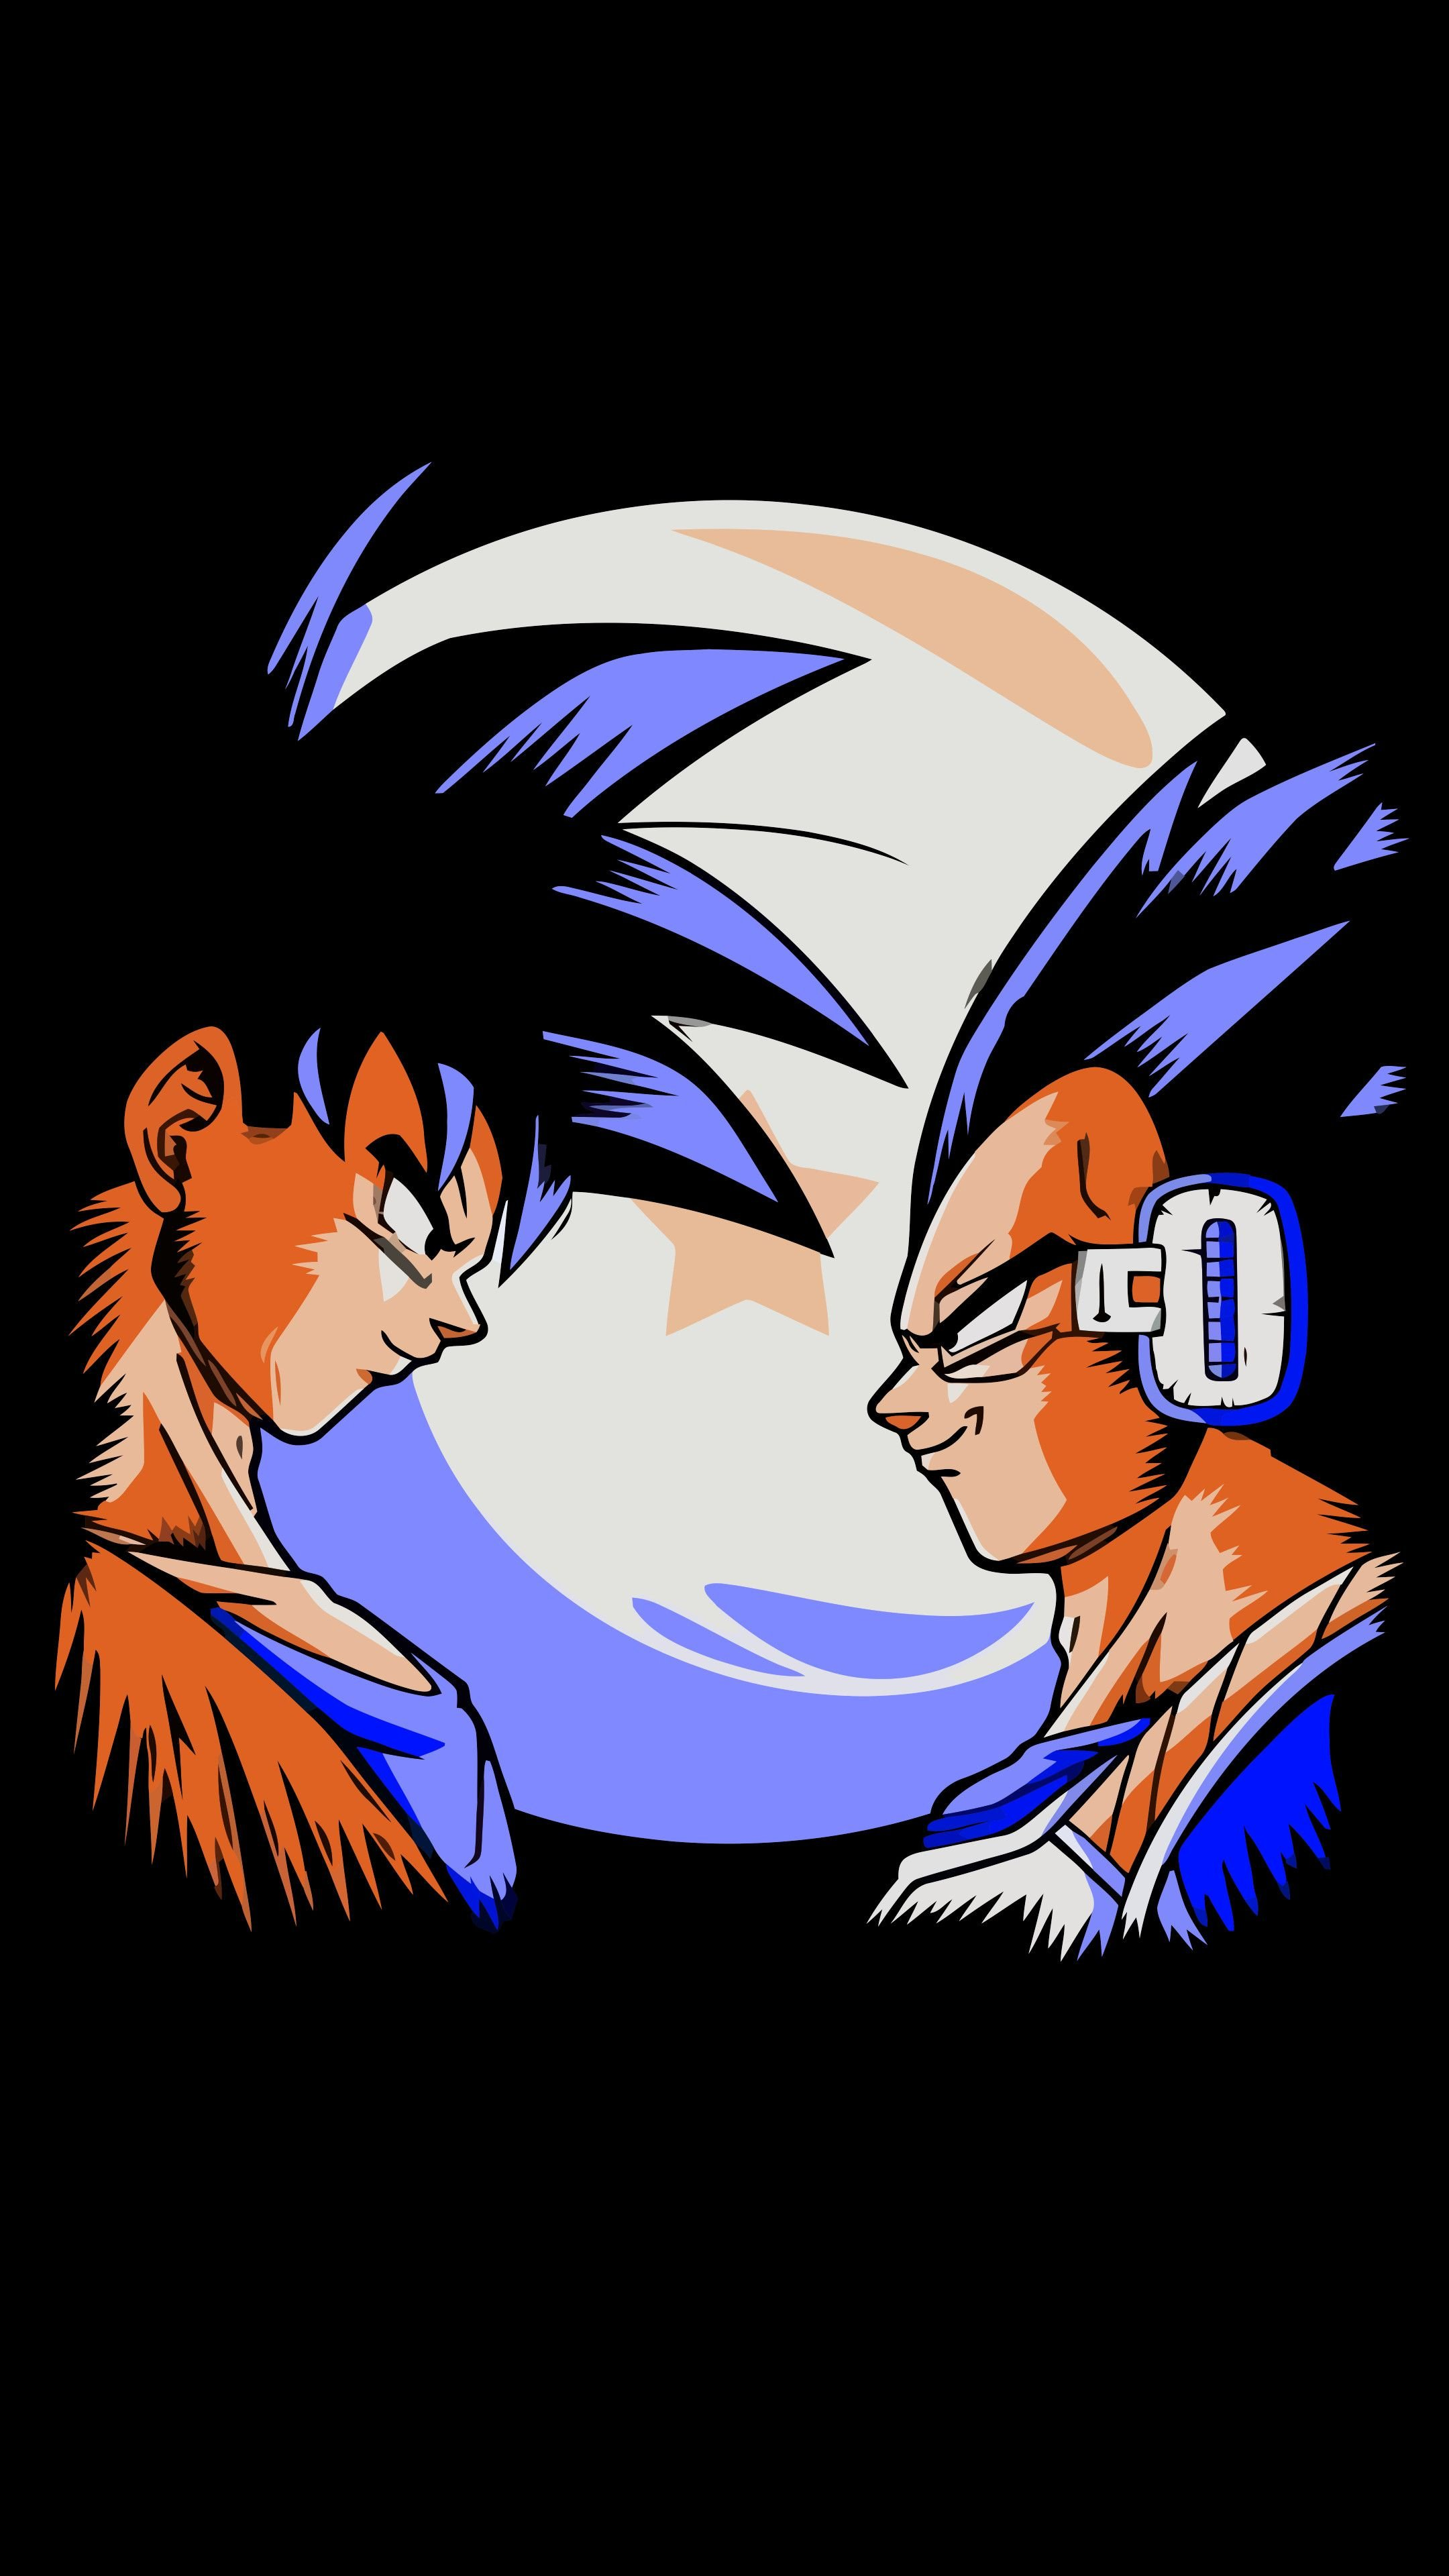 Dbz Iphone Wallpapers Top Free Dbz Iphone Backgrounds